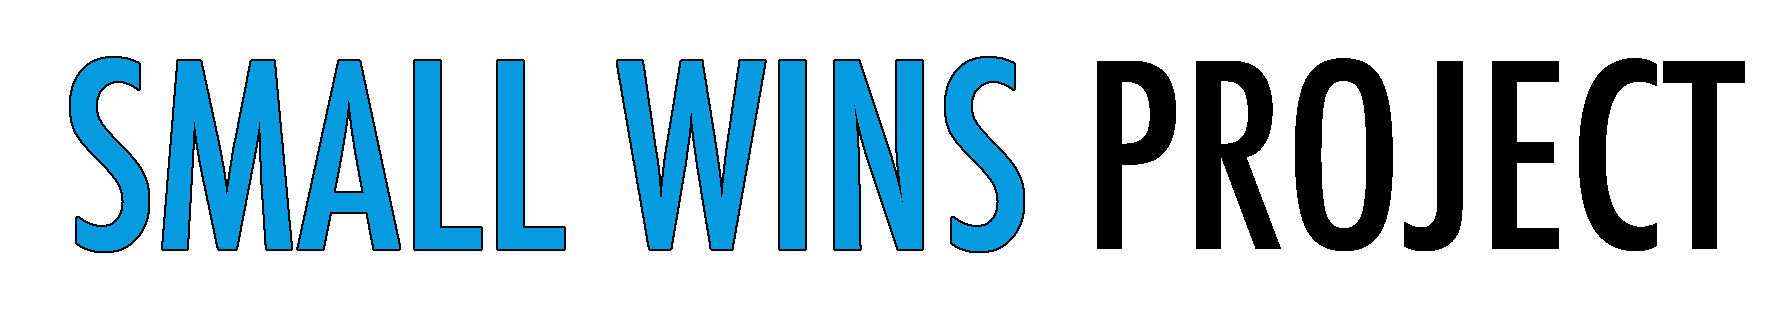 Small Wins Project